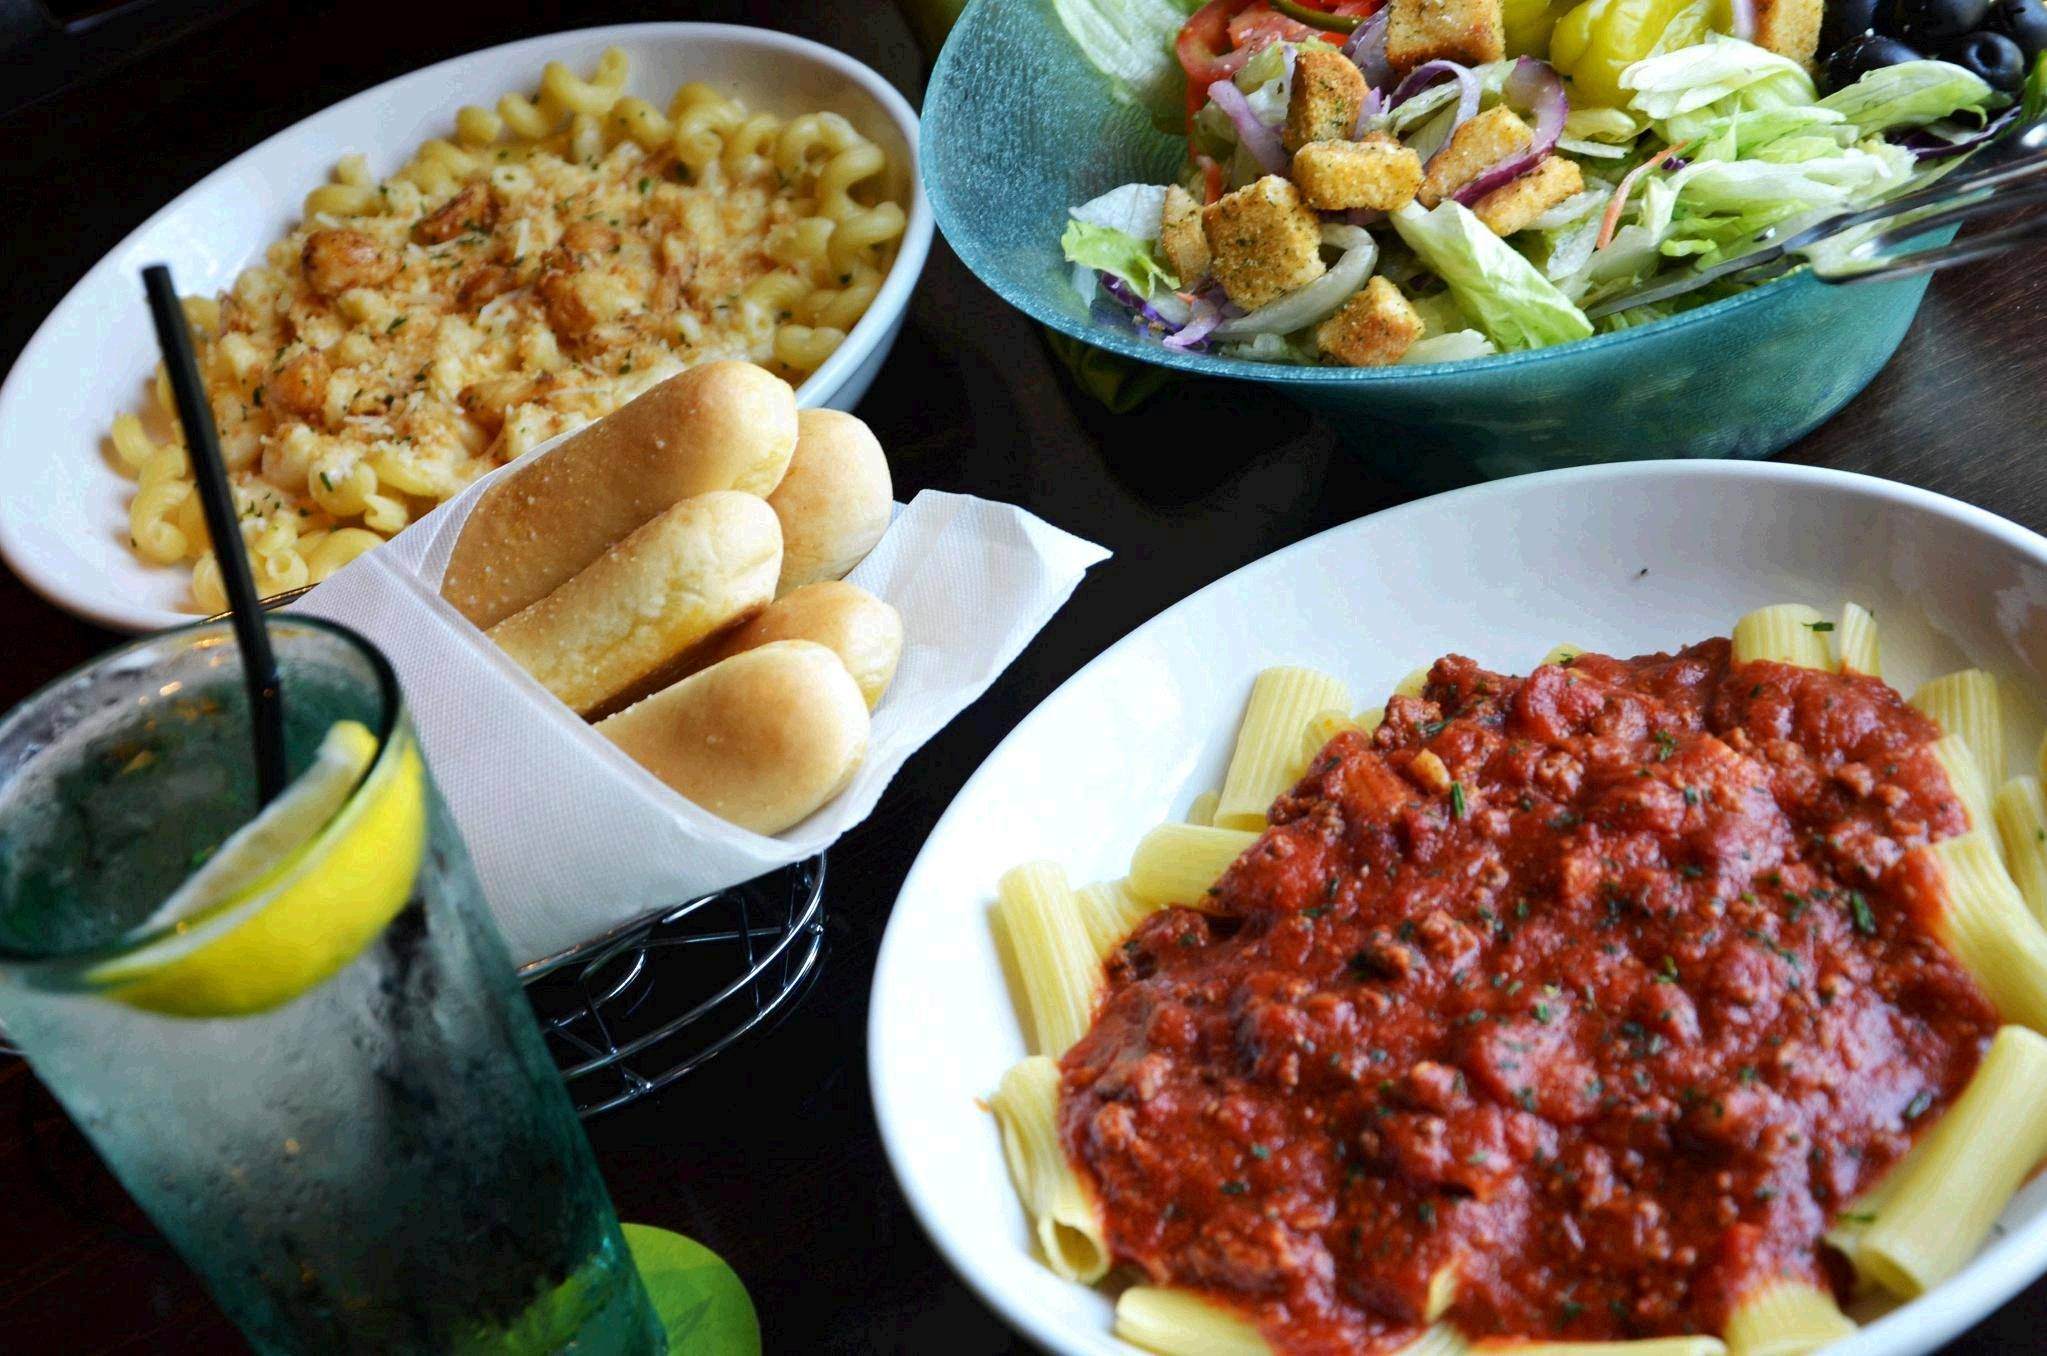 Olive Garden S Veterans Day 2020 Deal Is Free Pasta And Breadsticks